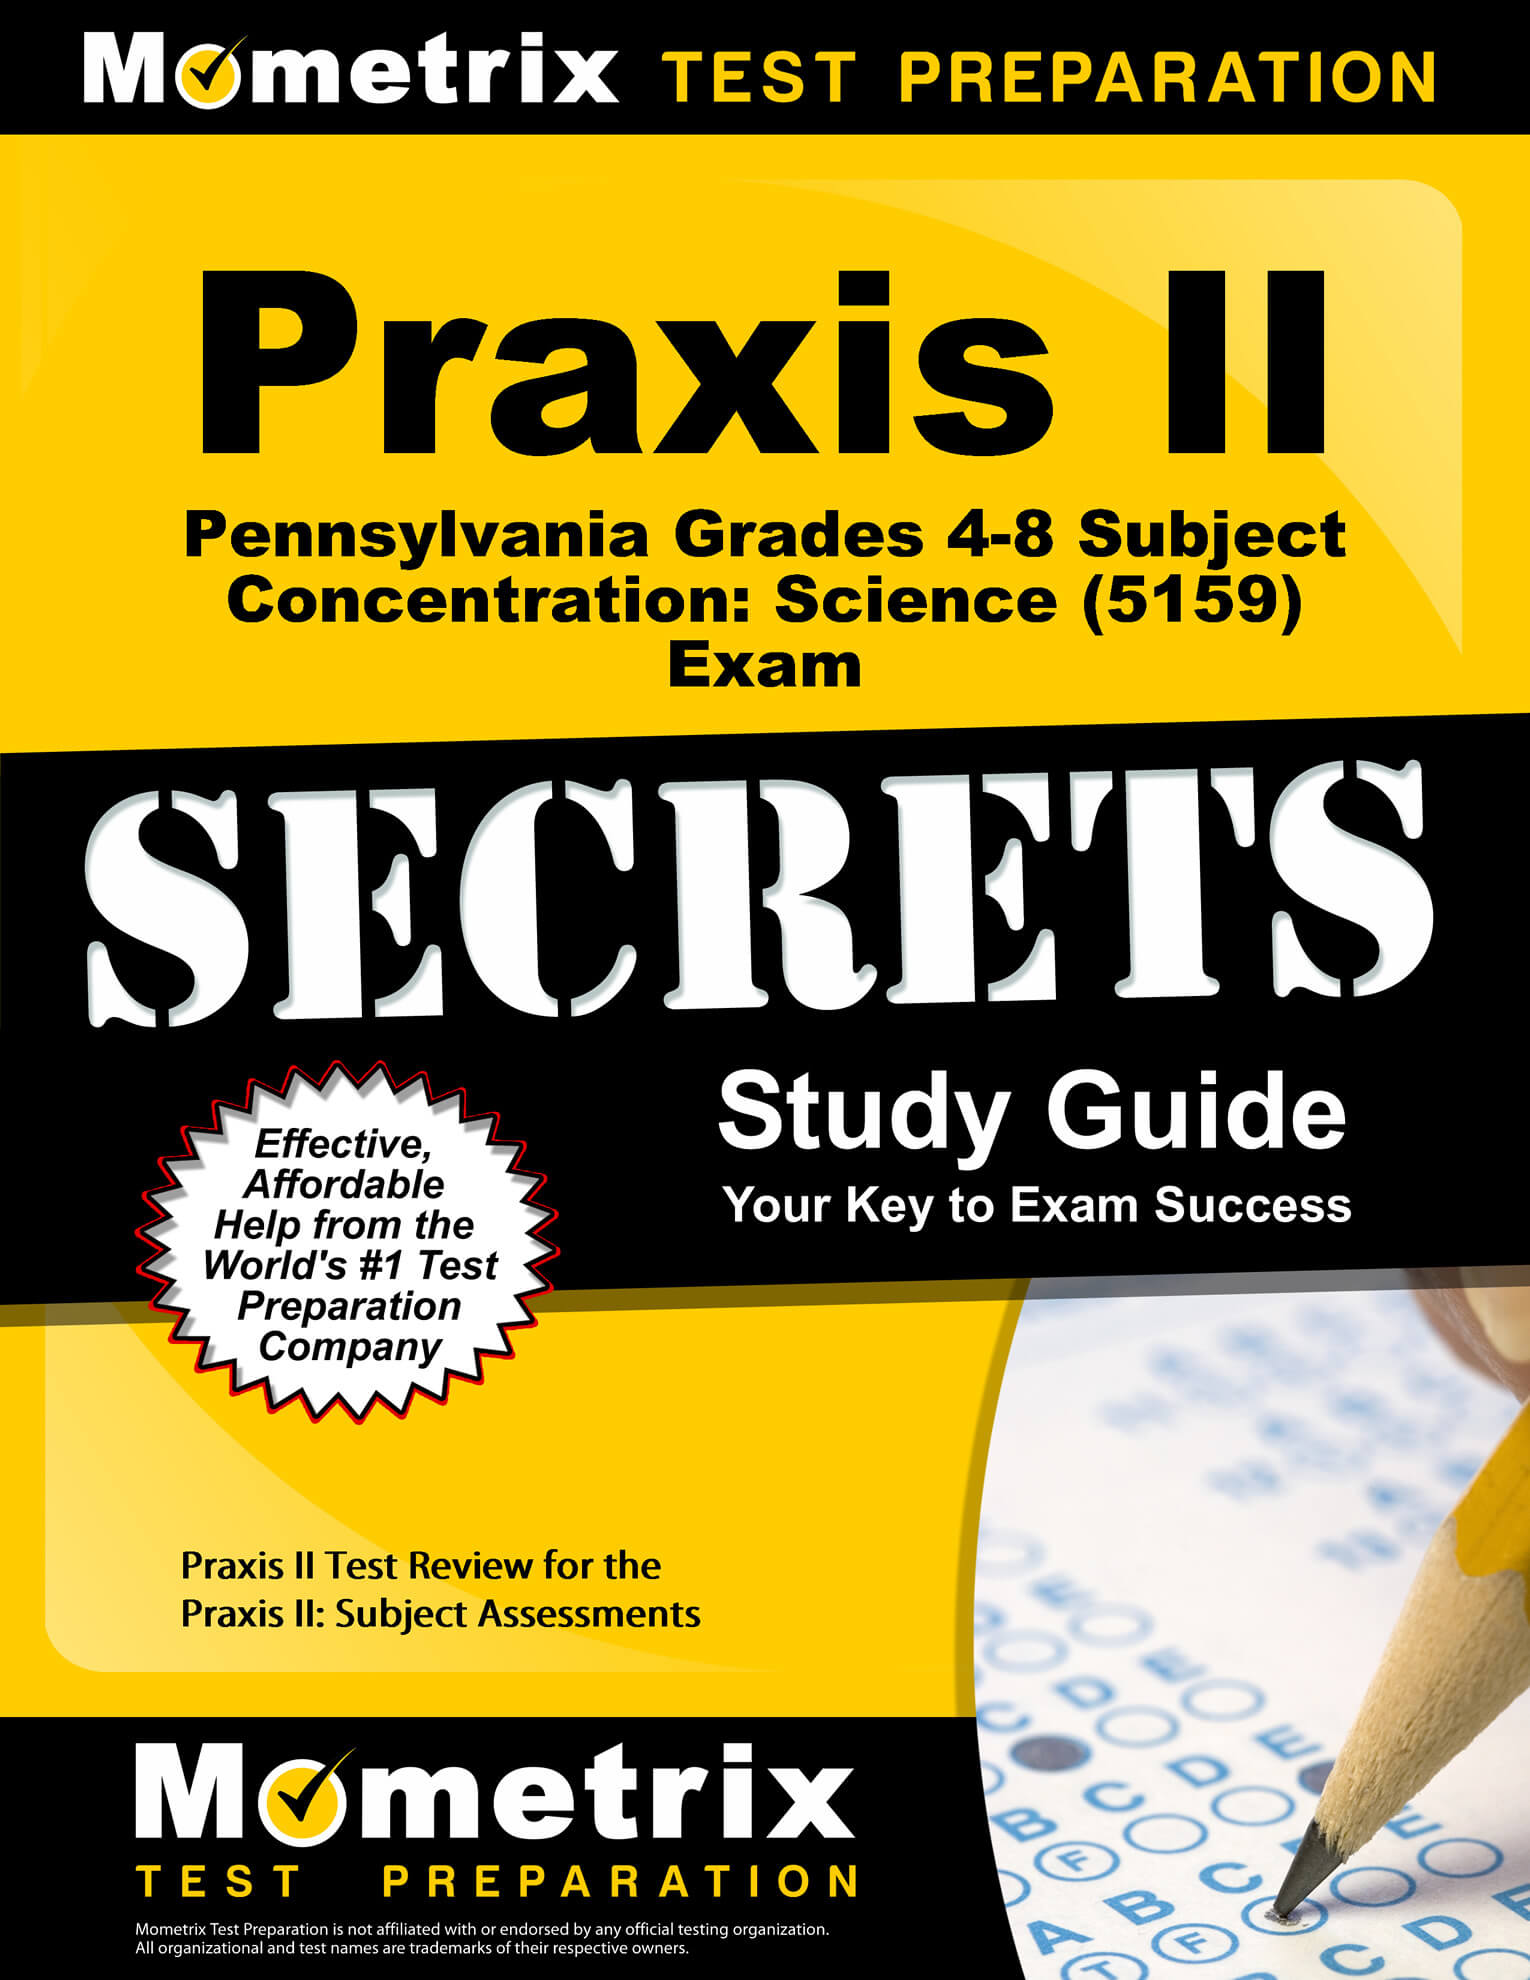 Praxis II Pennsylvania Grades 4-8 Subject Concentration: Science Study Guide